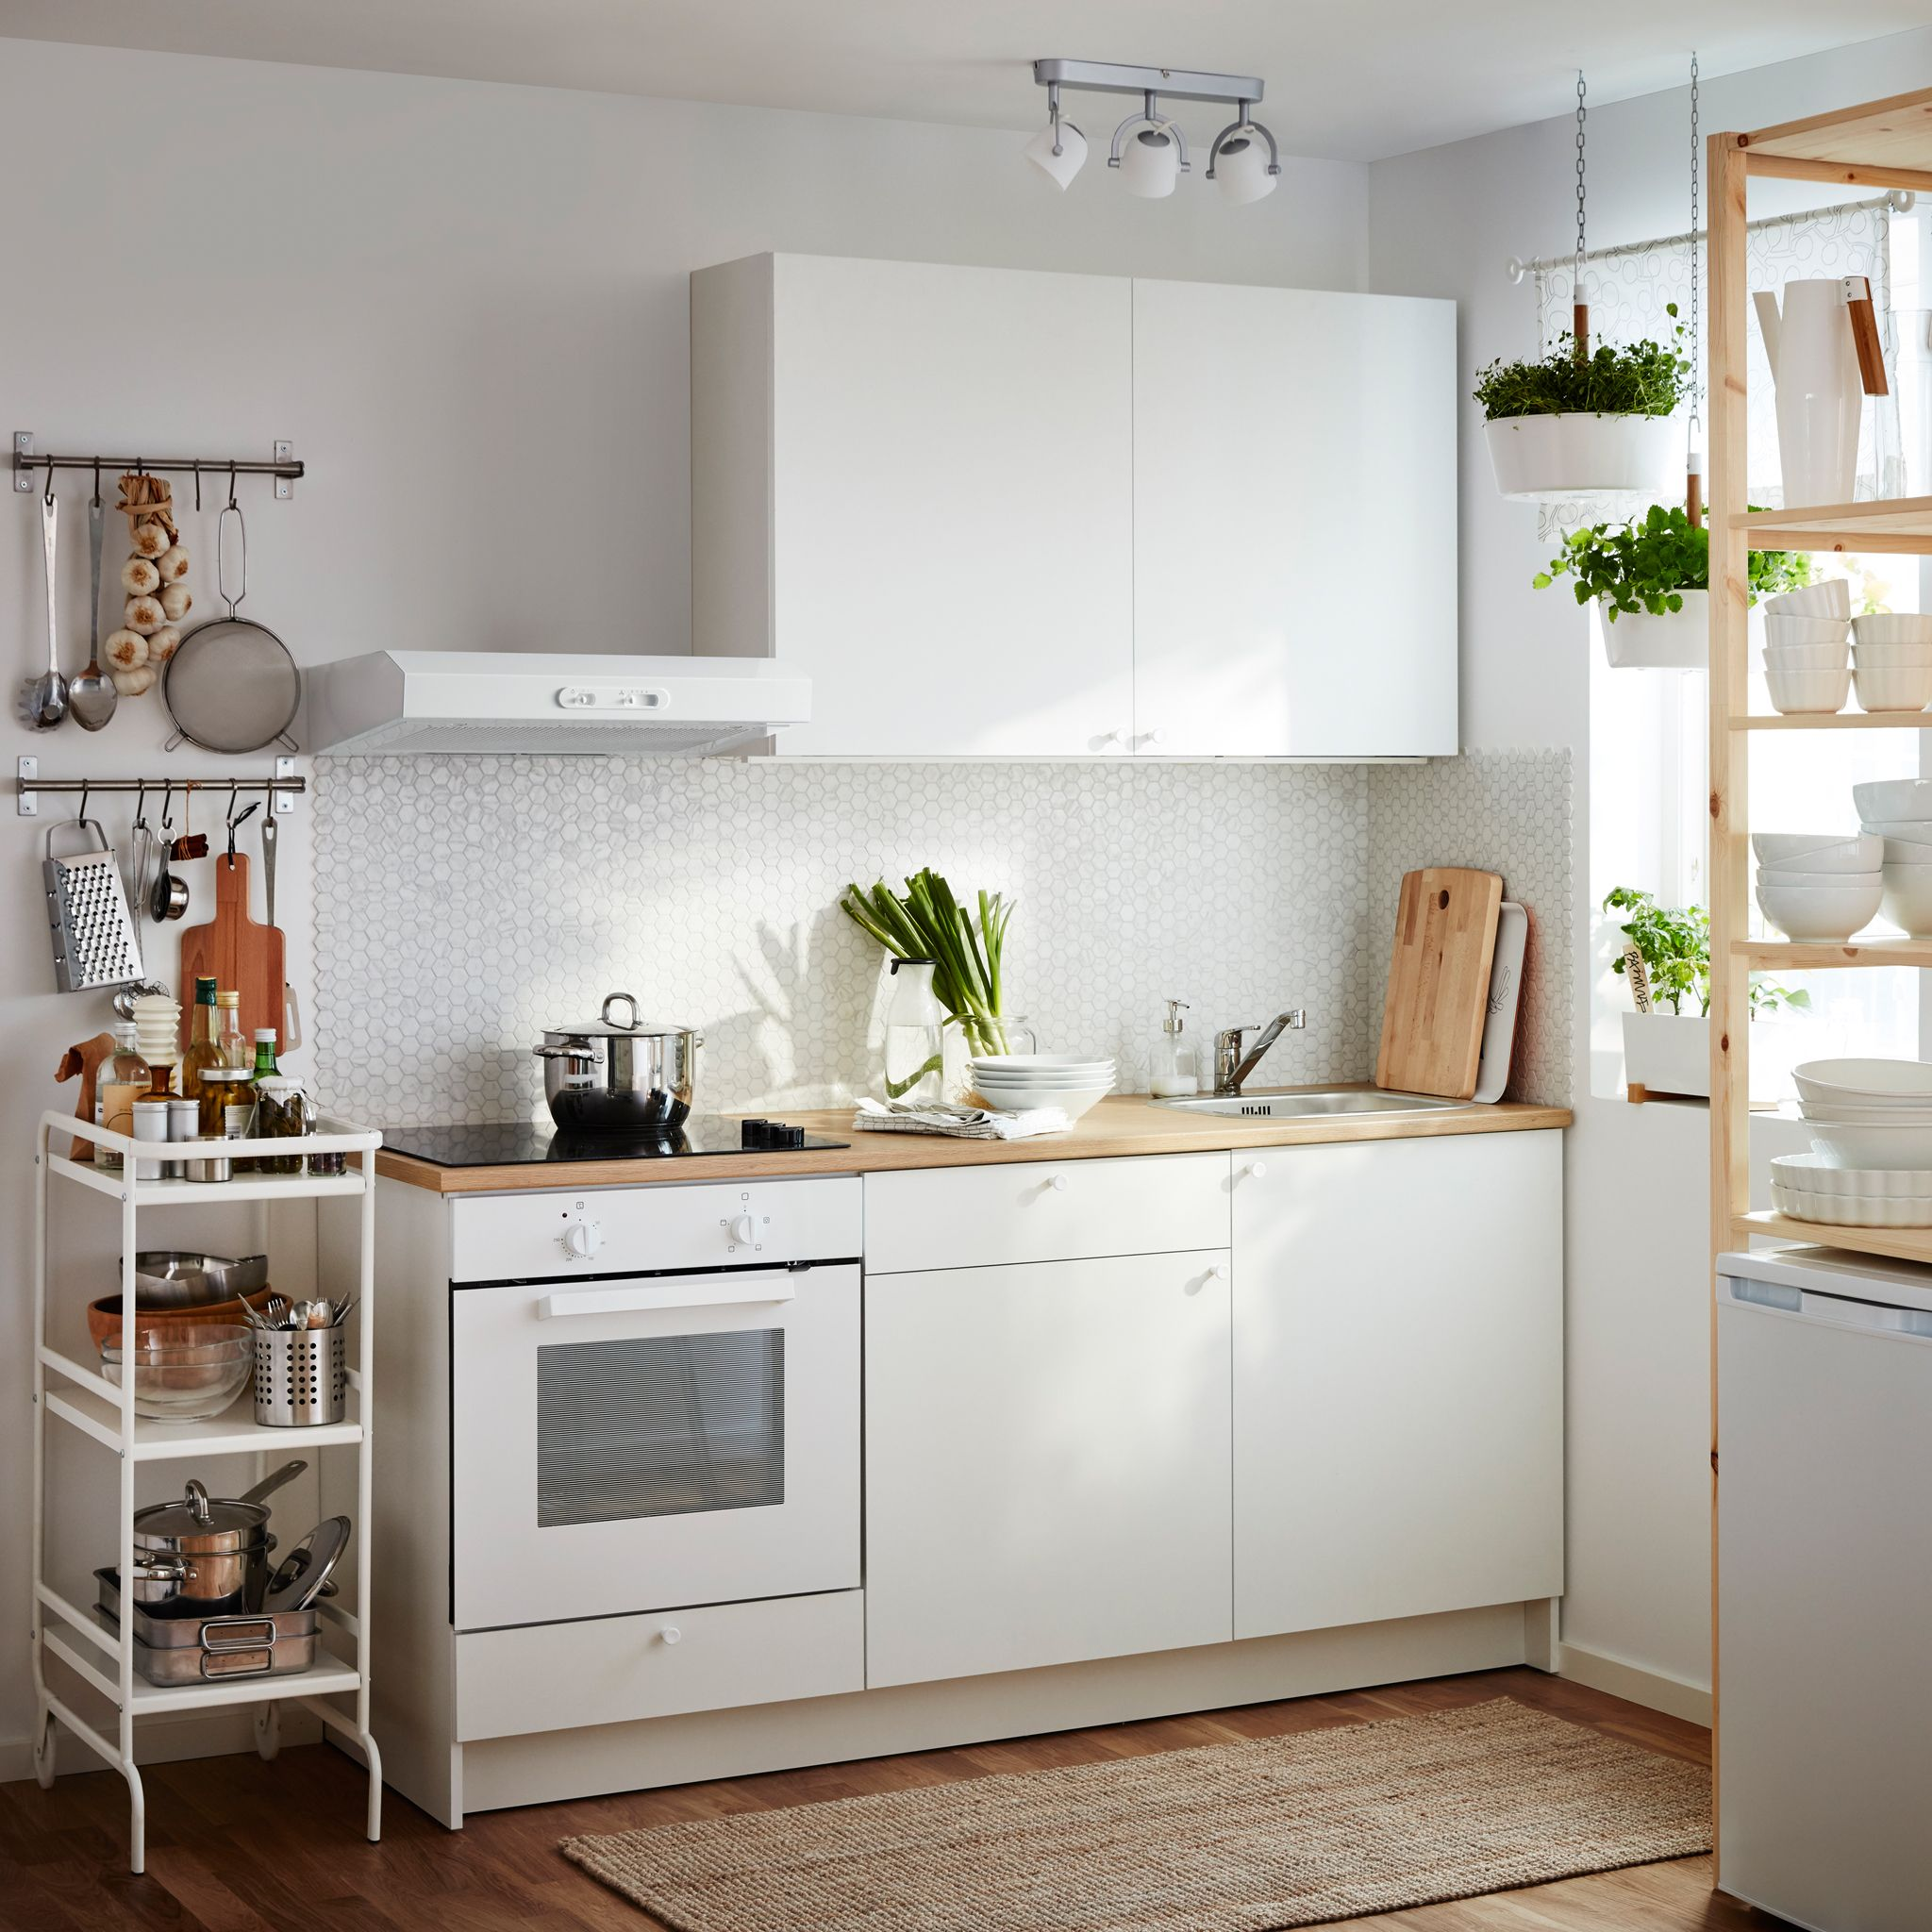 Image Result For Compact Ikea Kitchen